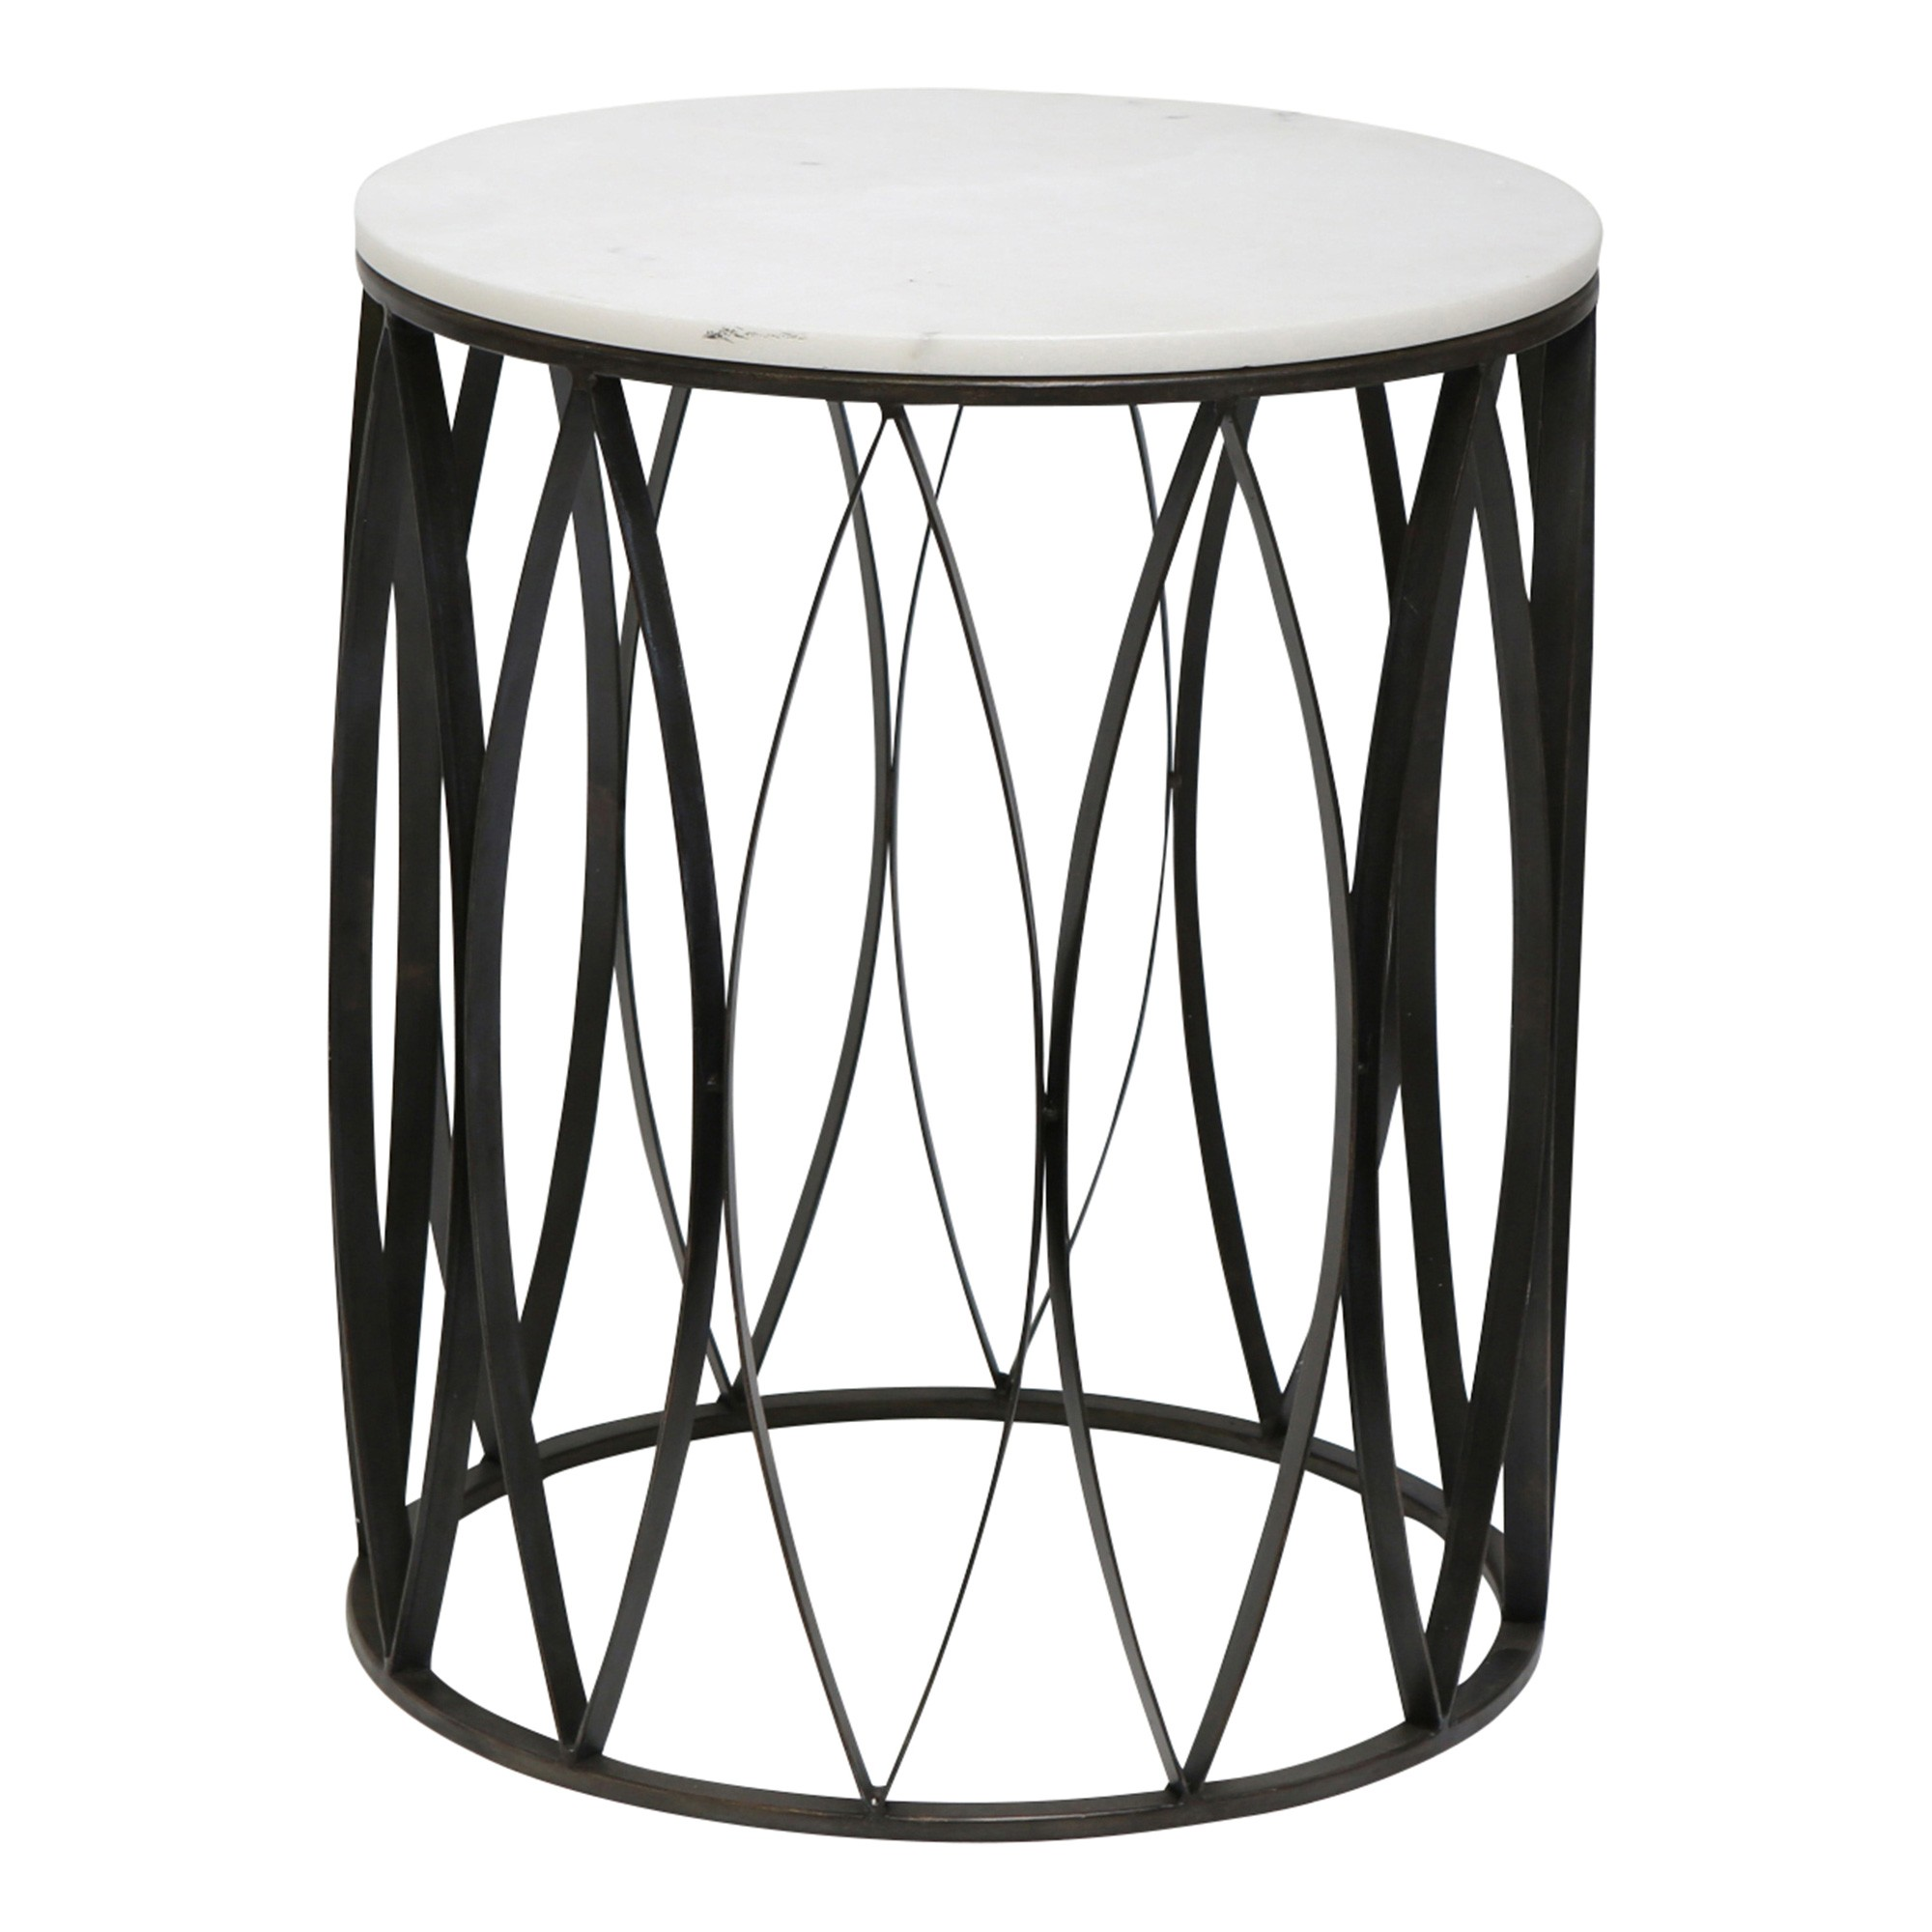 Logan Marble Topped Iron Round Side Table